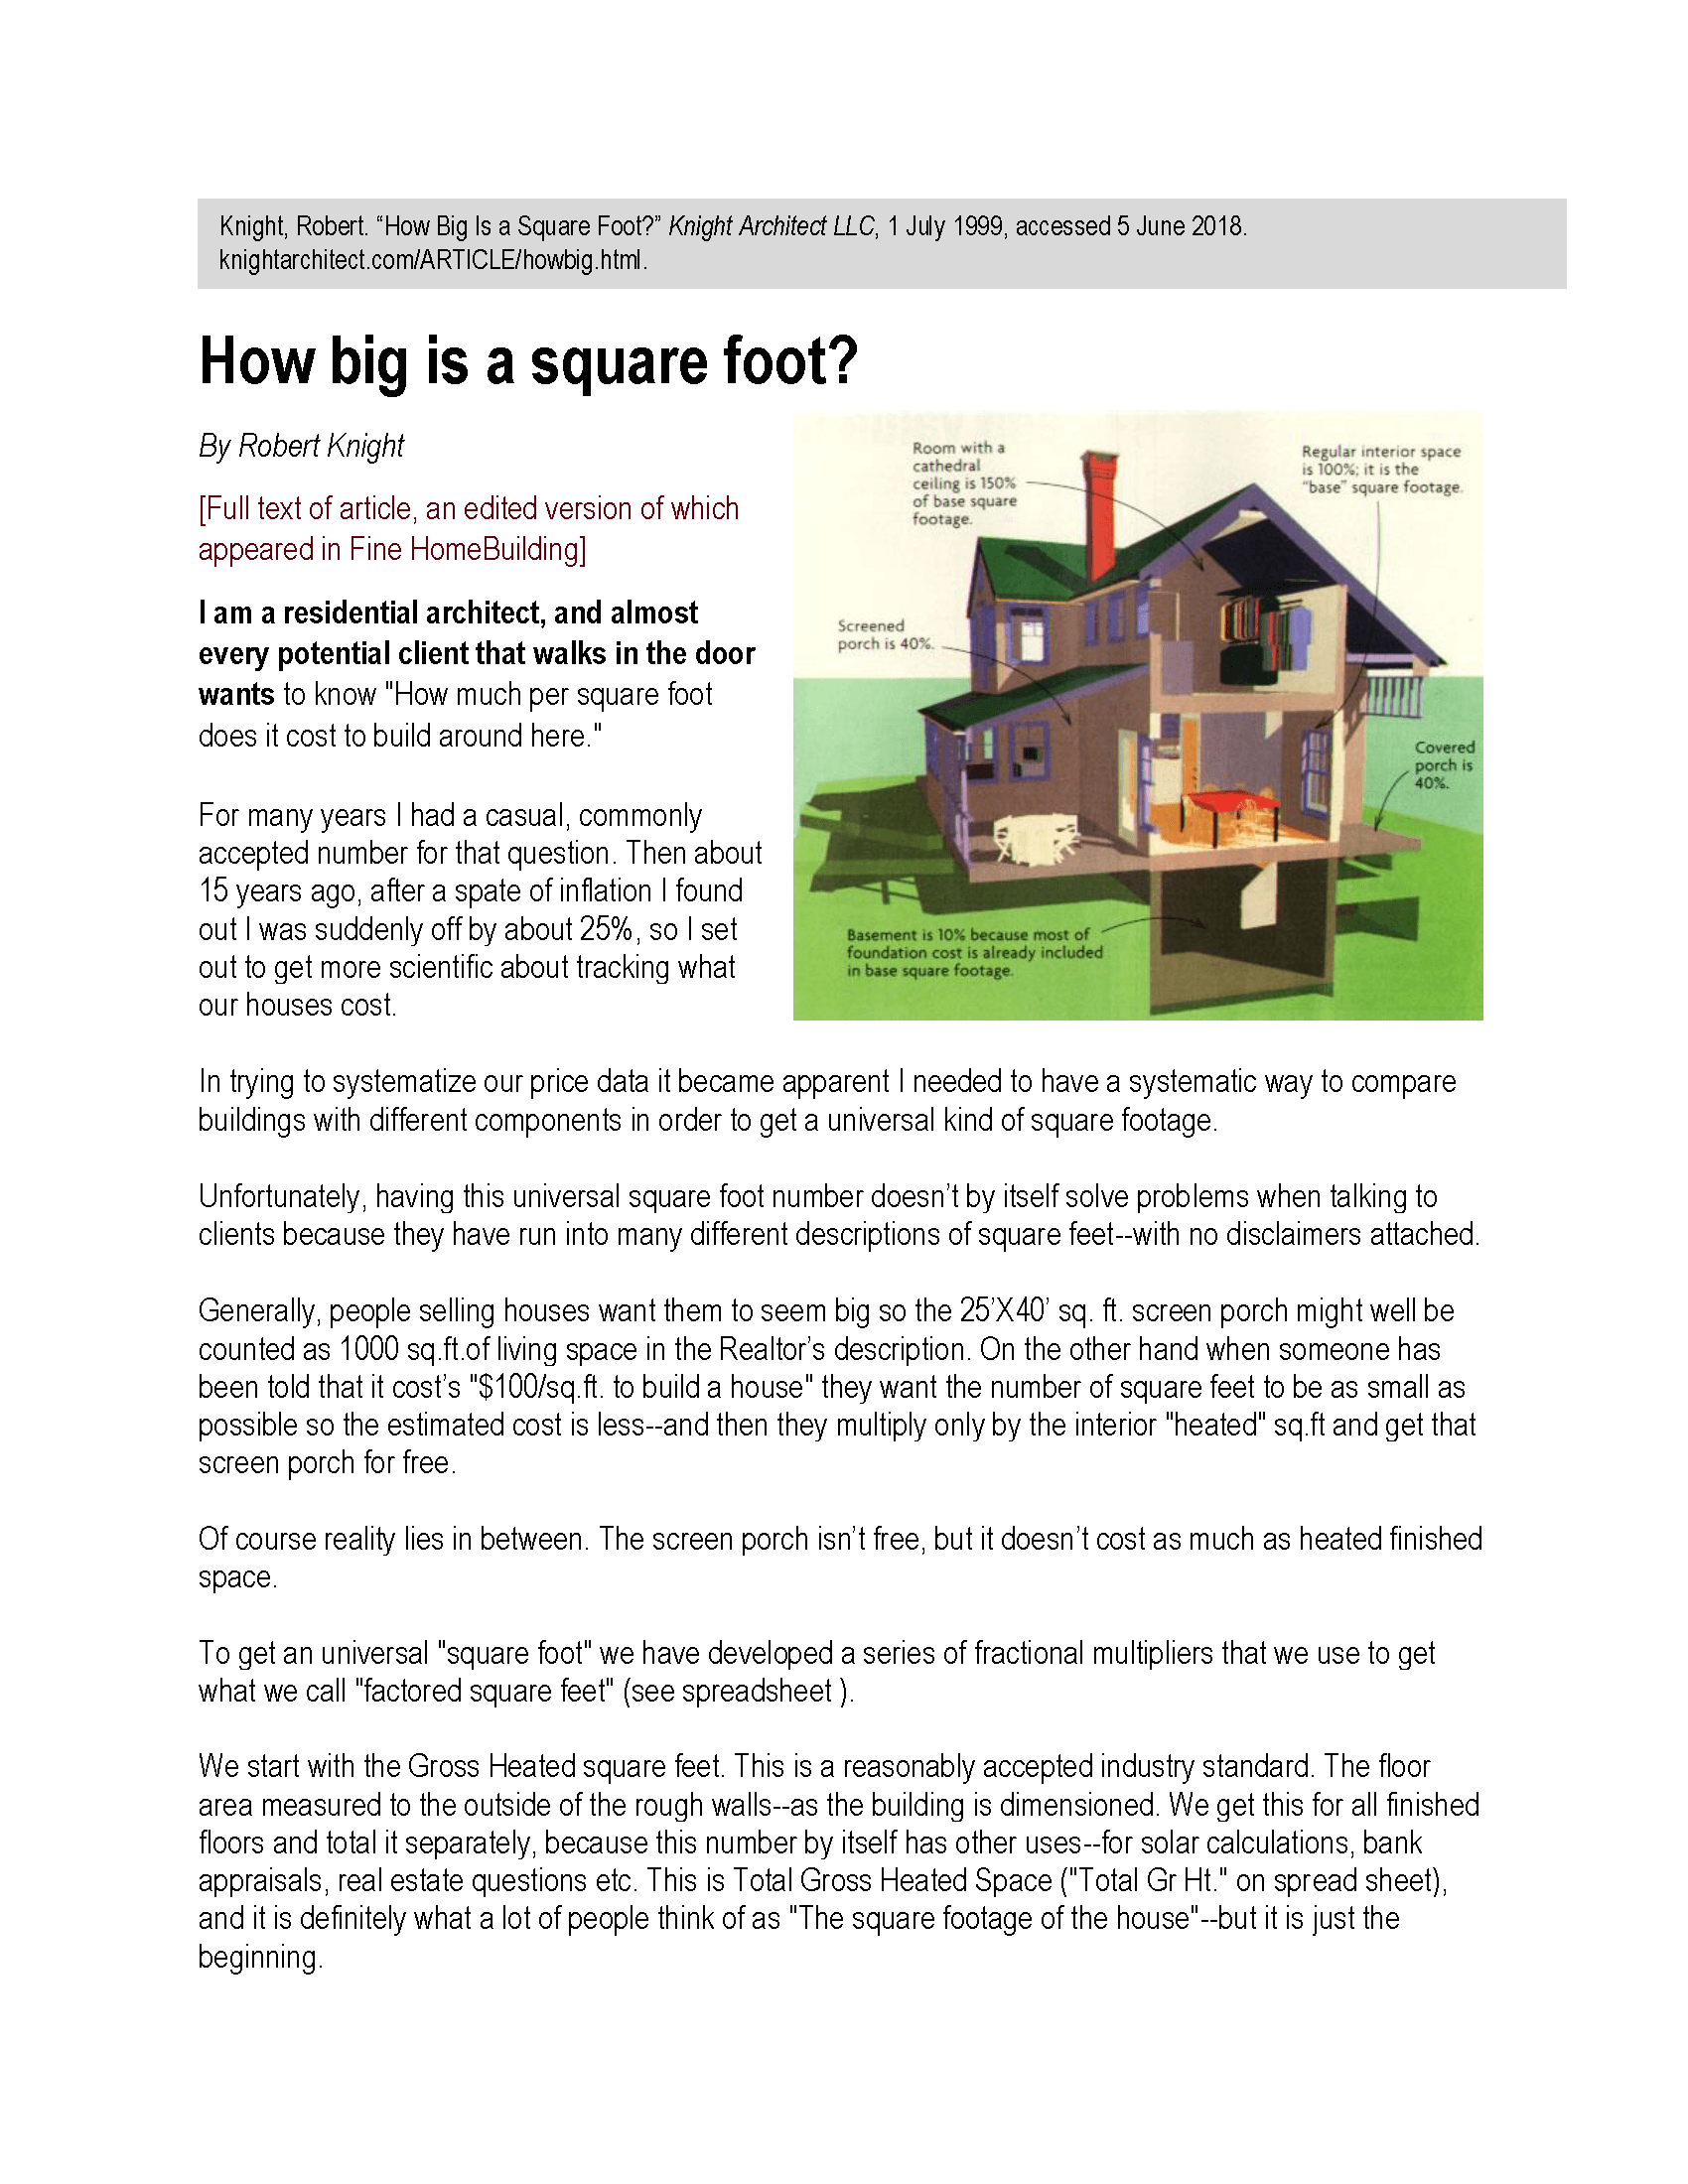 How big is a square foot